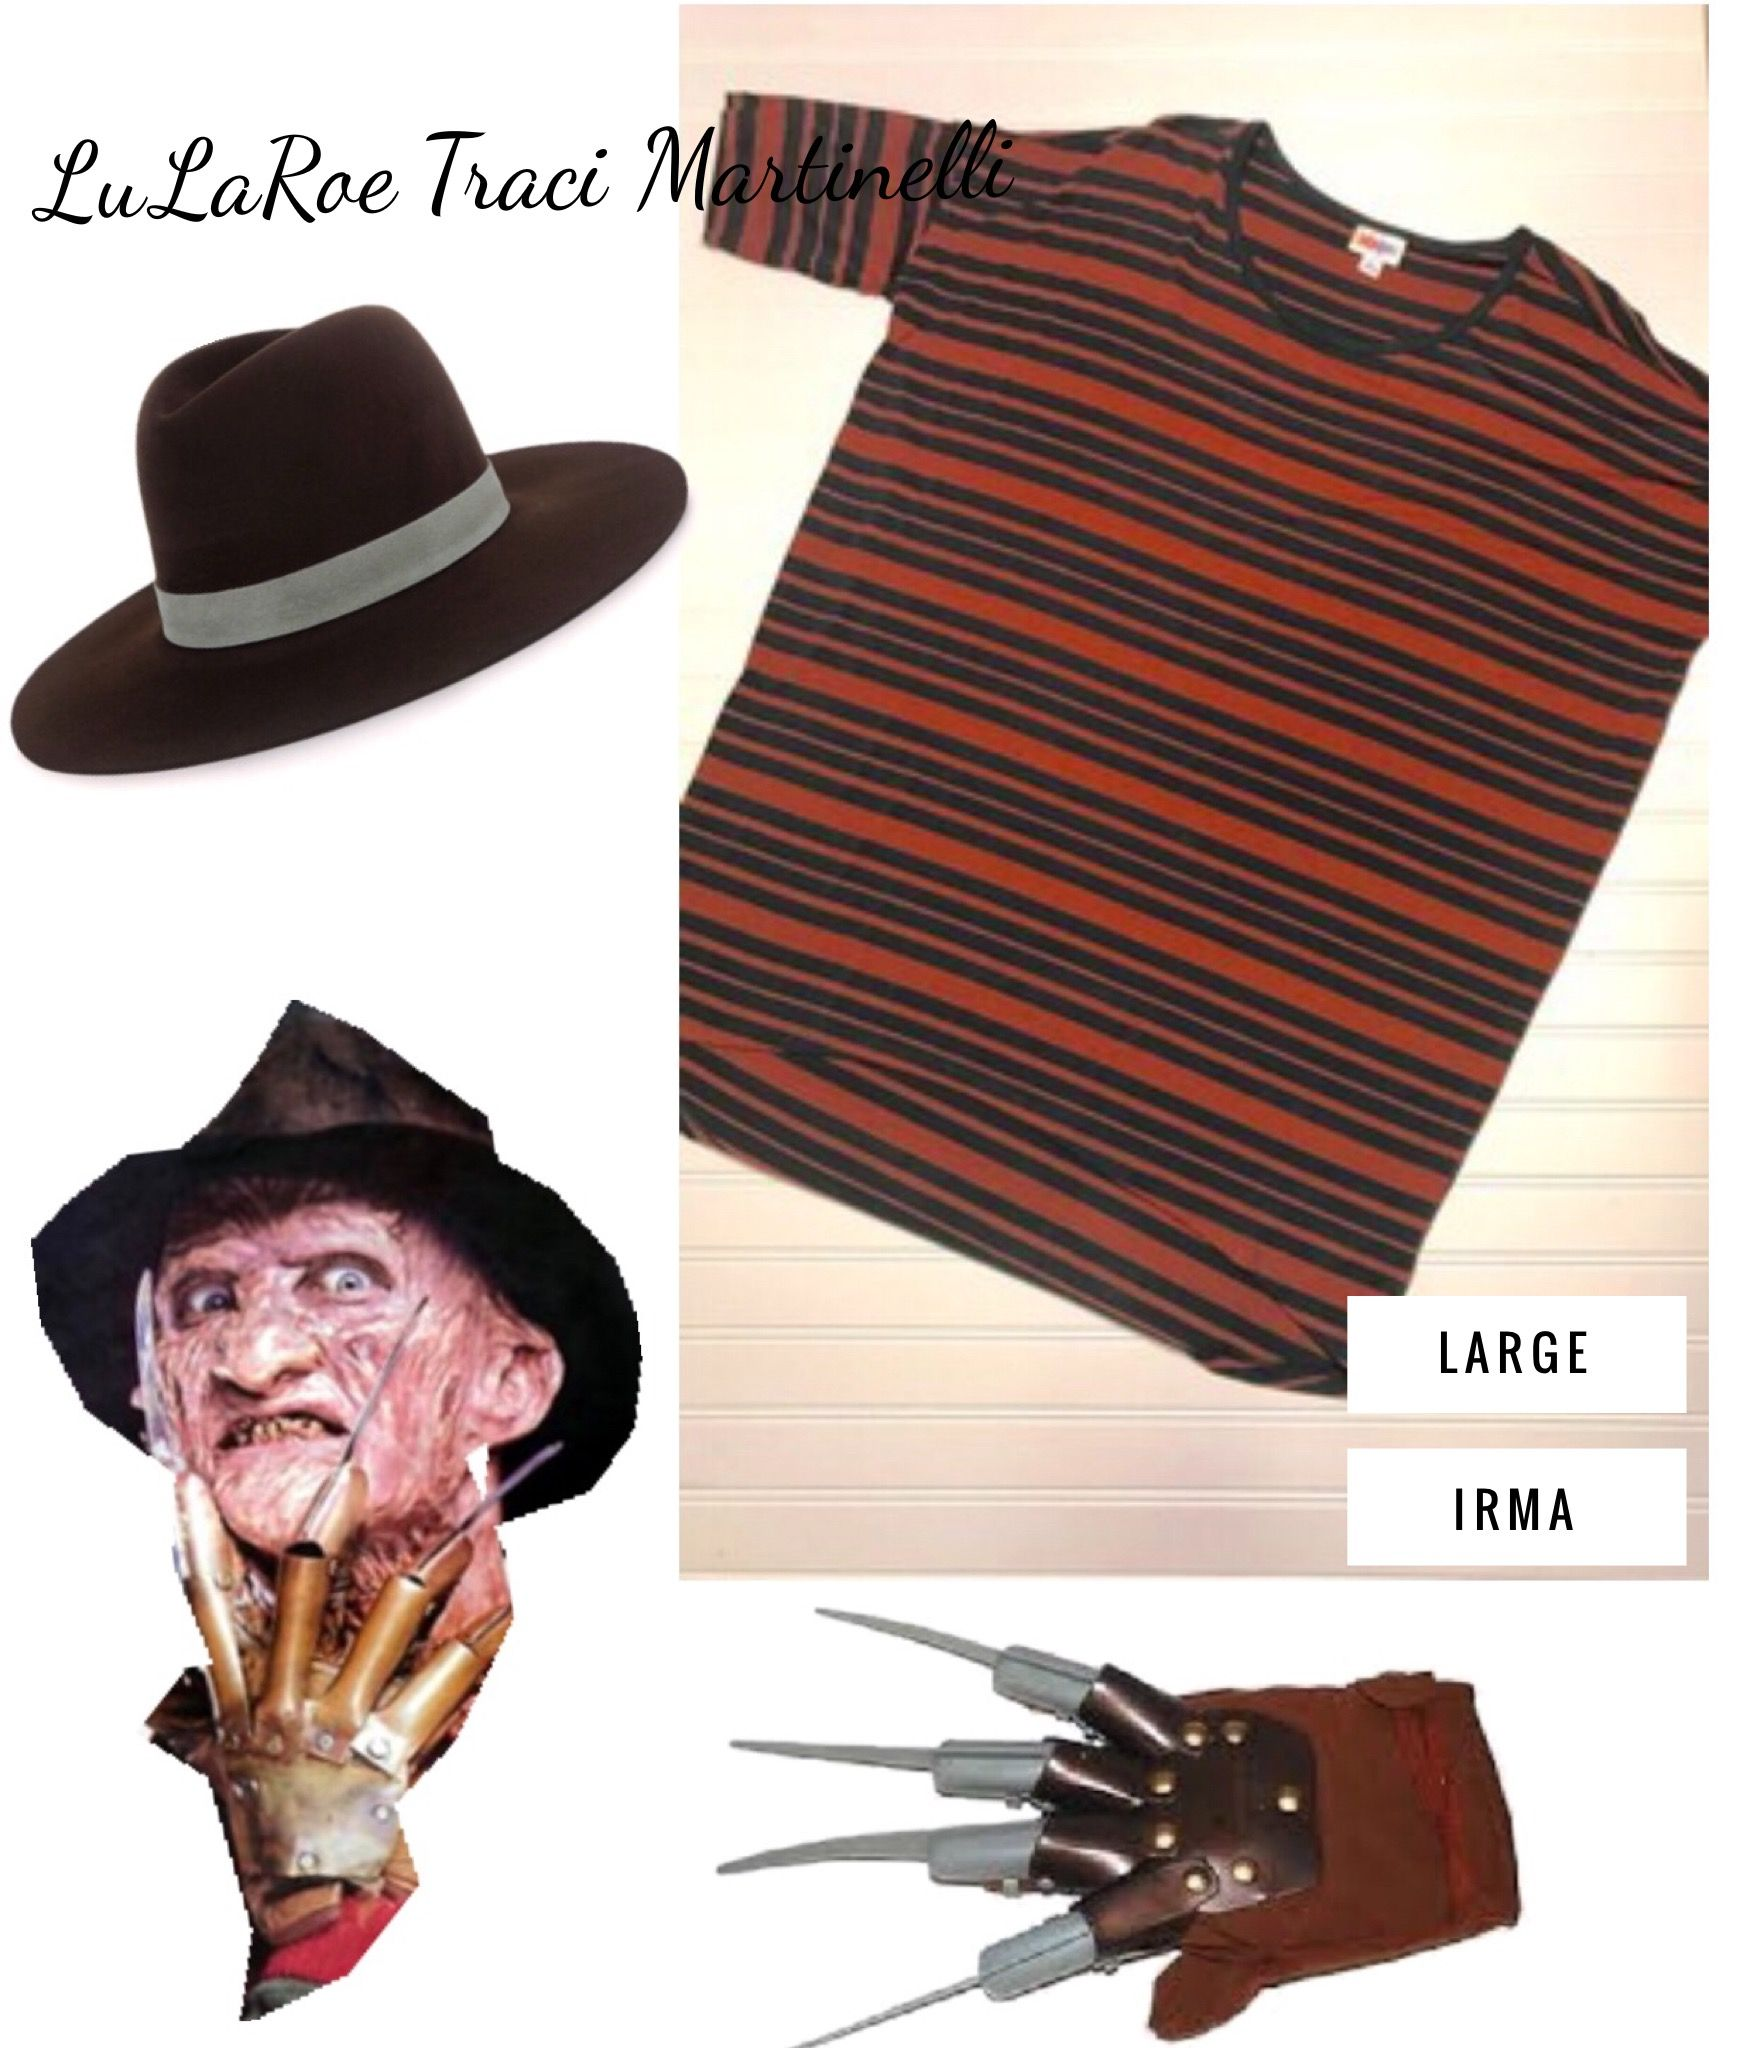 freddy krueger halloween costume from lularoe. stripped green and